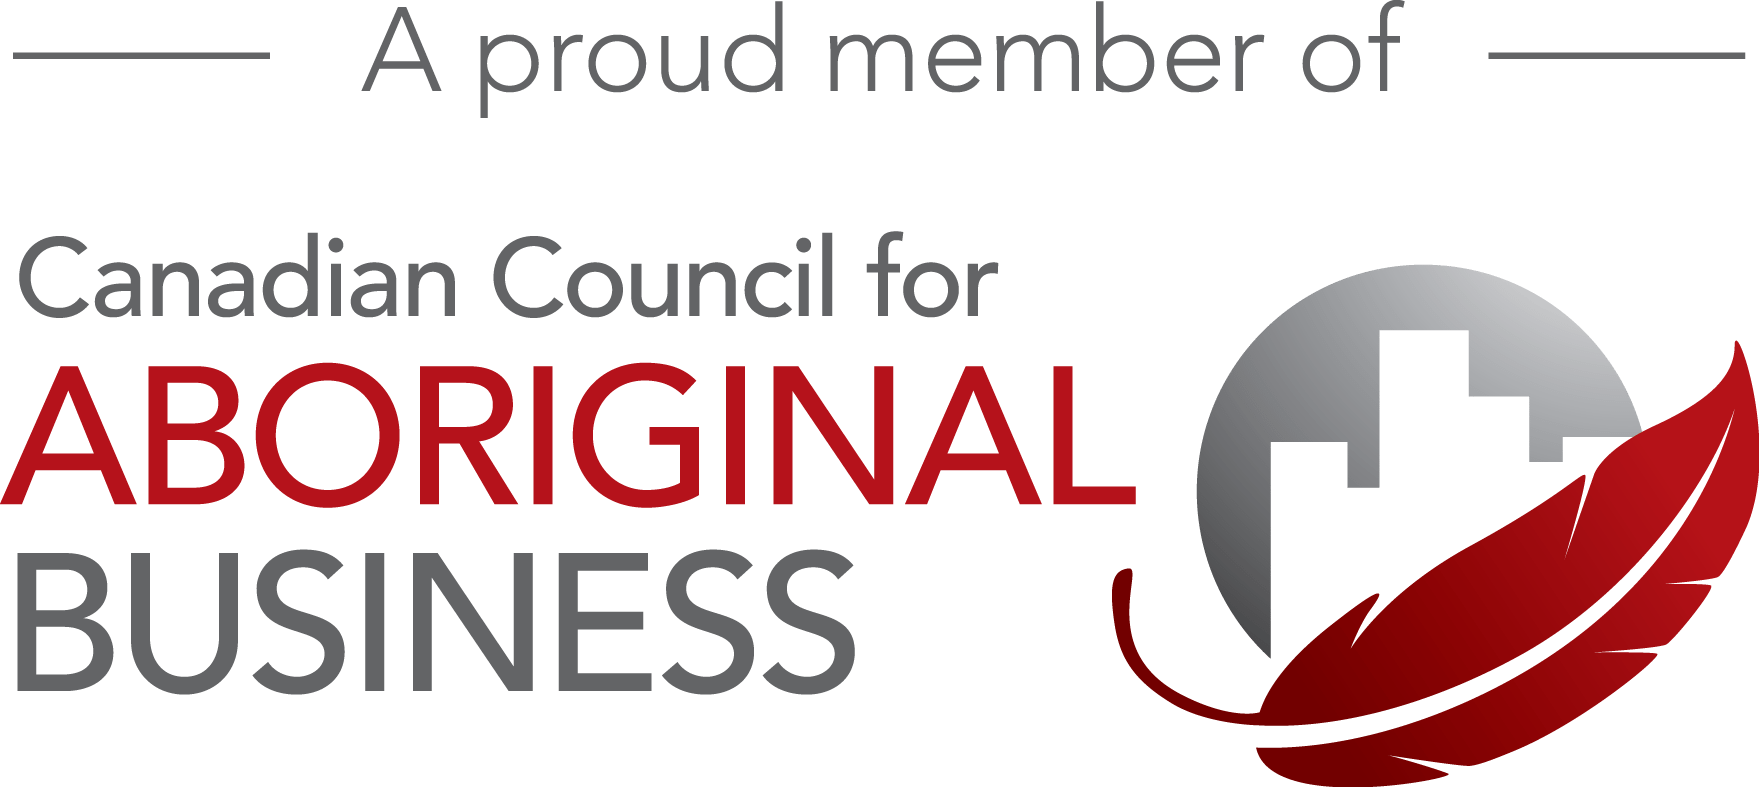 Proud member of the Canadian Council for Aboriginal Business